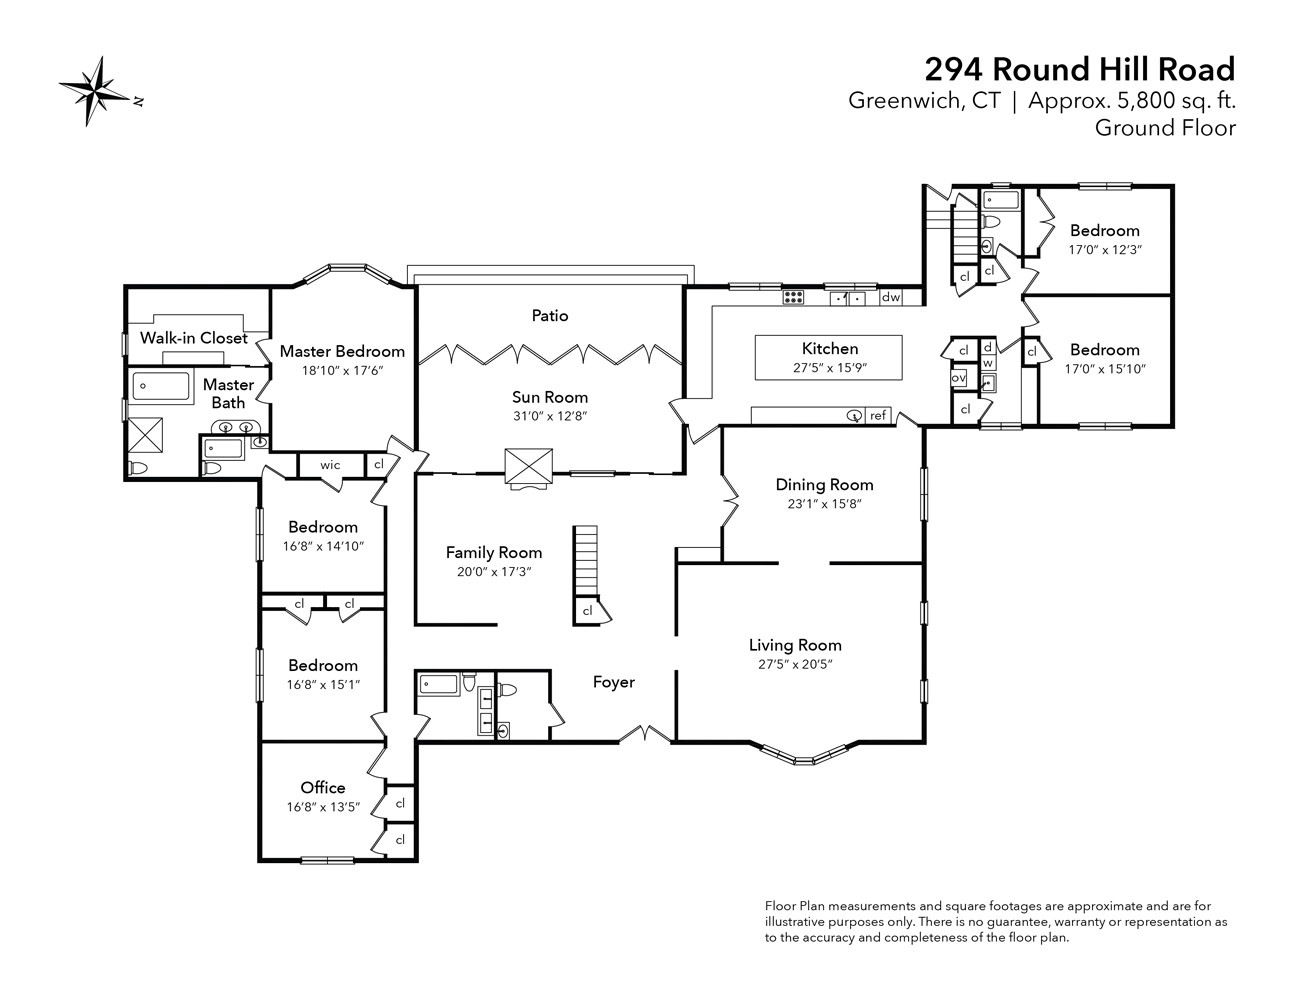 294 Round Hill Road Floor Plans-01